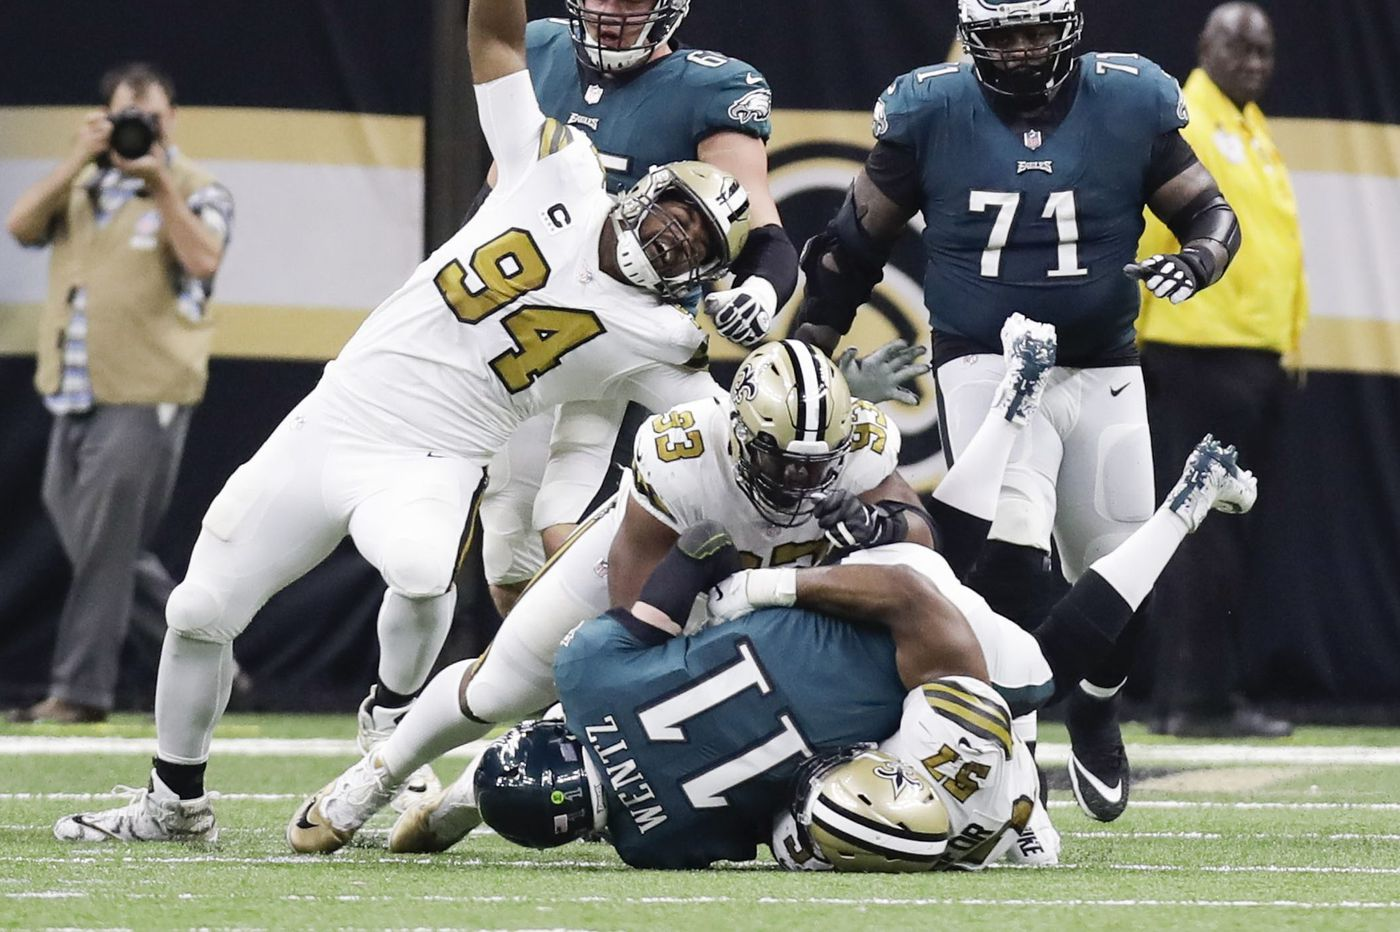 Saints 48, Eagles 7: Birds embarrassed in New Orleans with worst loss in more than a decade